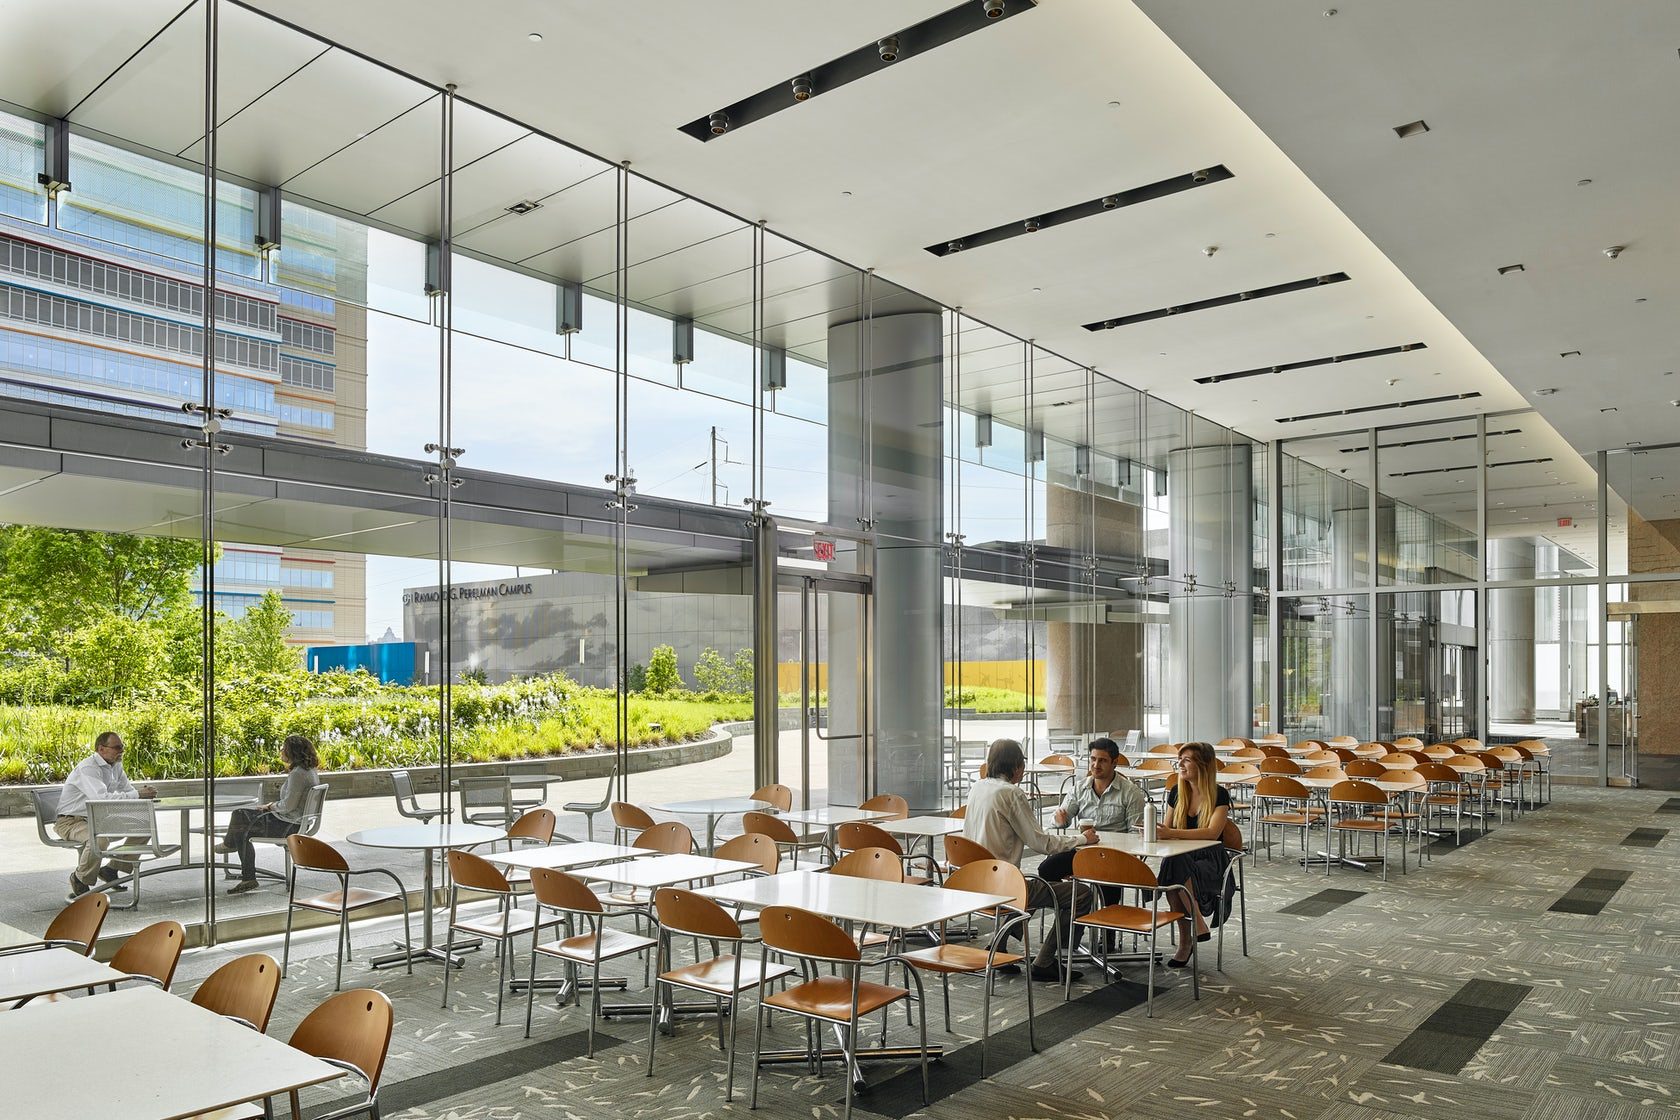 CHOP, Colket Translational Research Building on Architizer